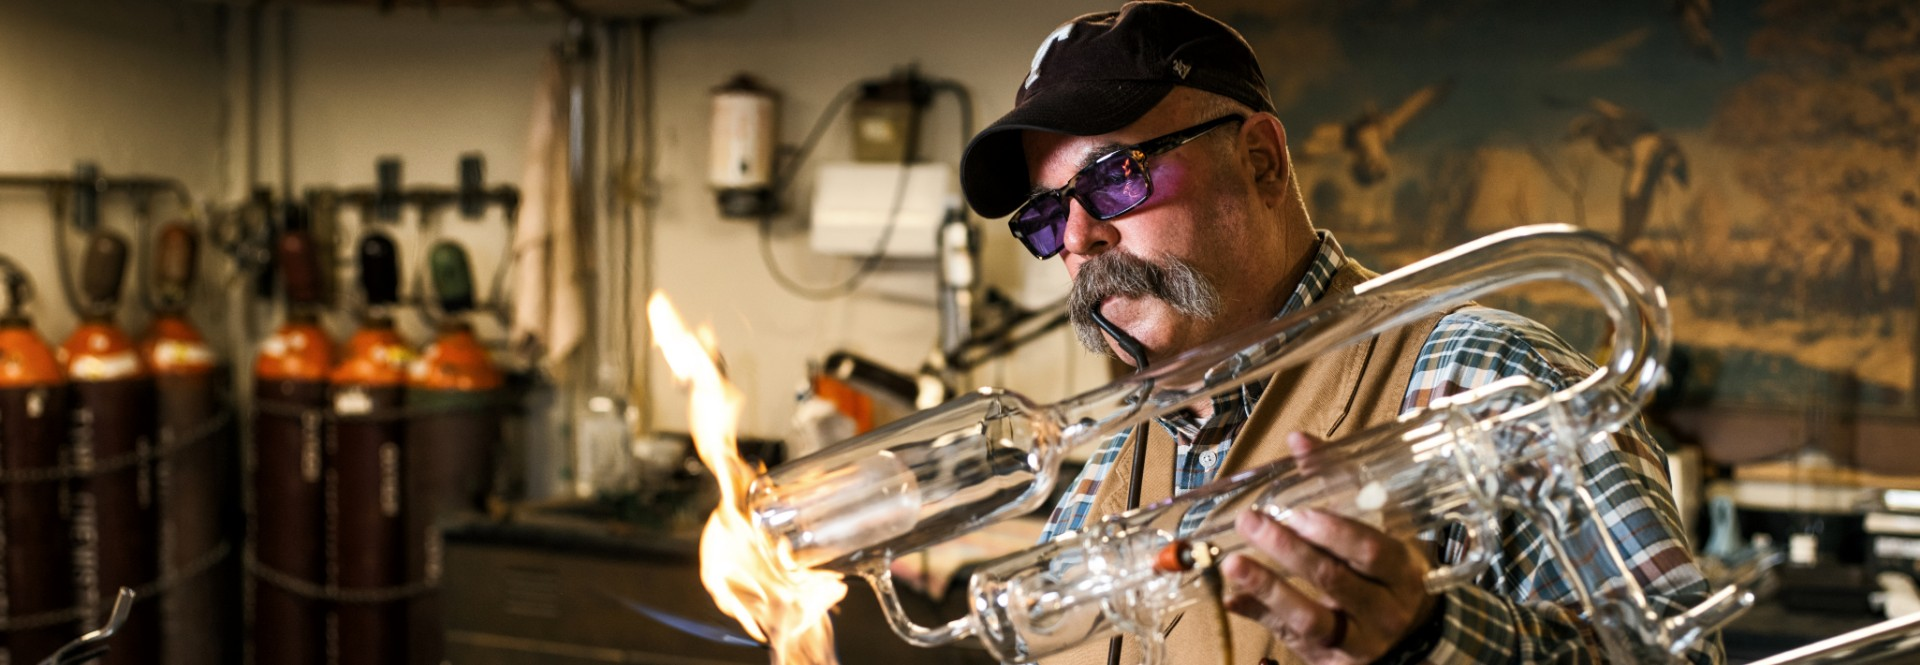 "William ""Bill"" Merka has been the university's go-to glassblower for more than three decades."